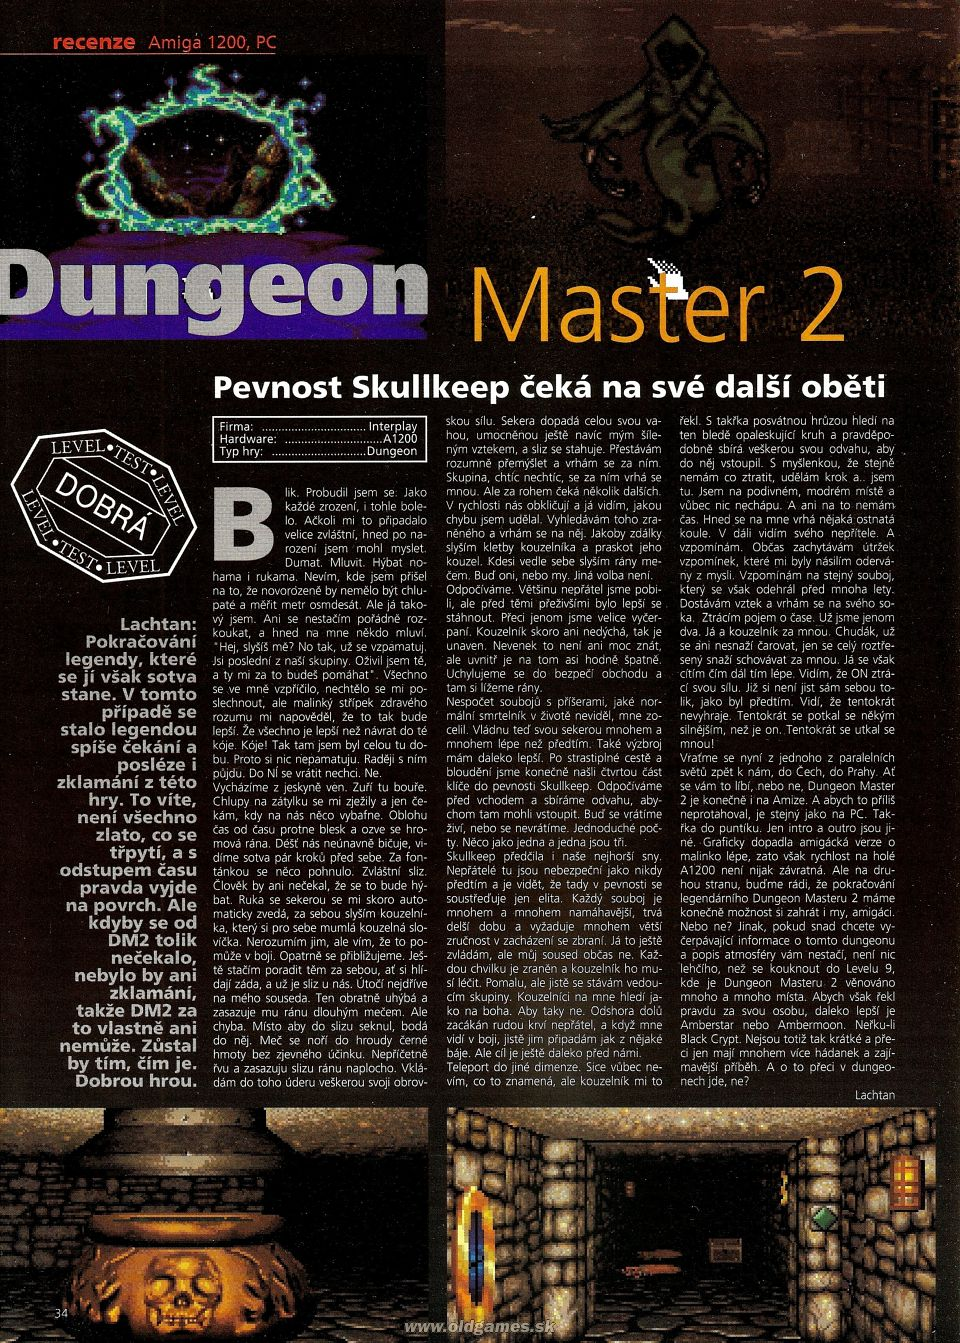 Dungeon Master II for Amiga Review published in Czech magazine 'Level', Issue #12 January 1996, Page 34